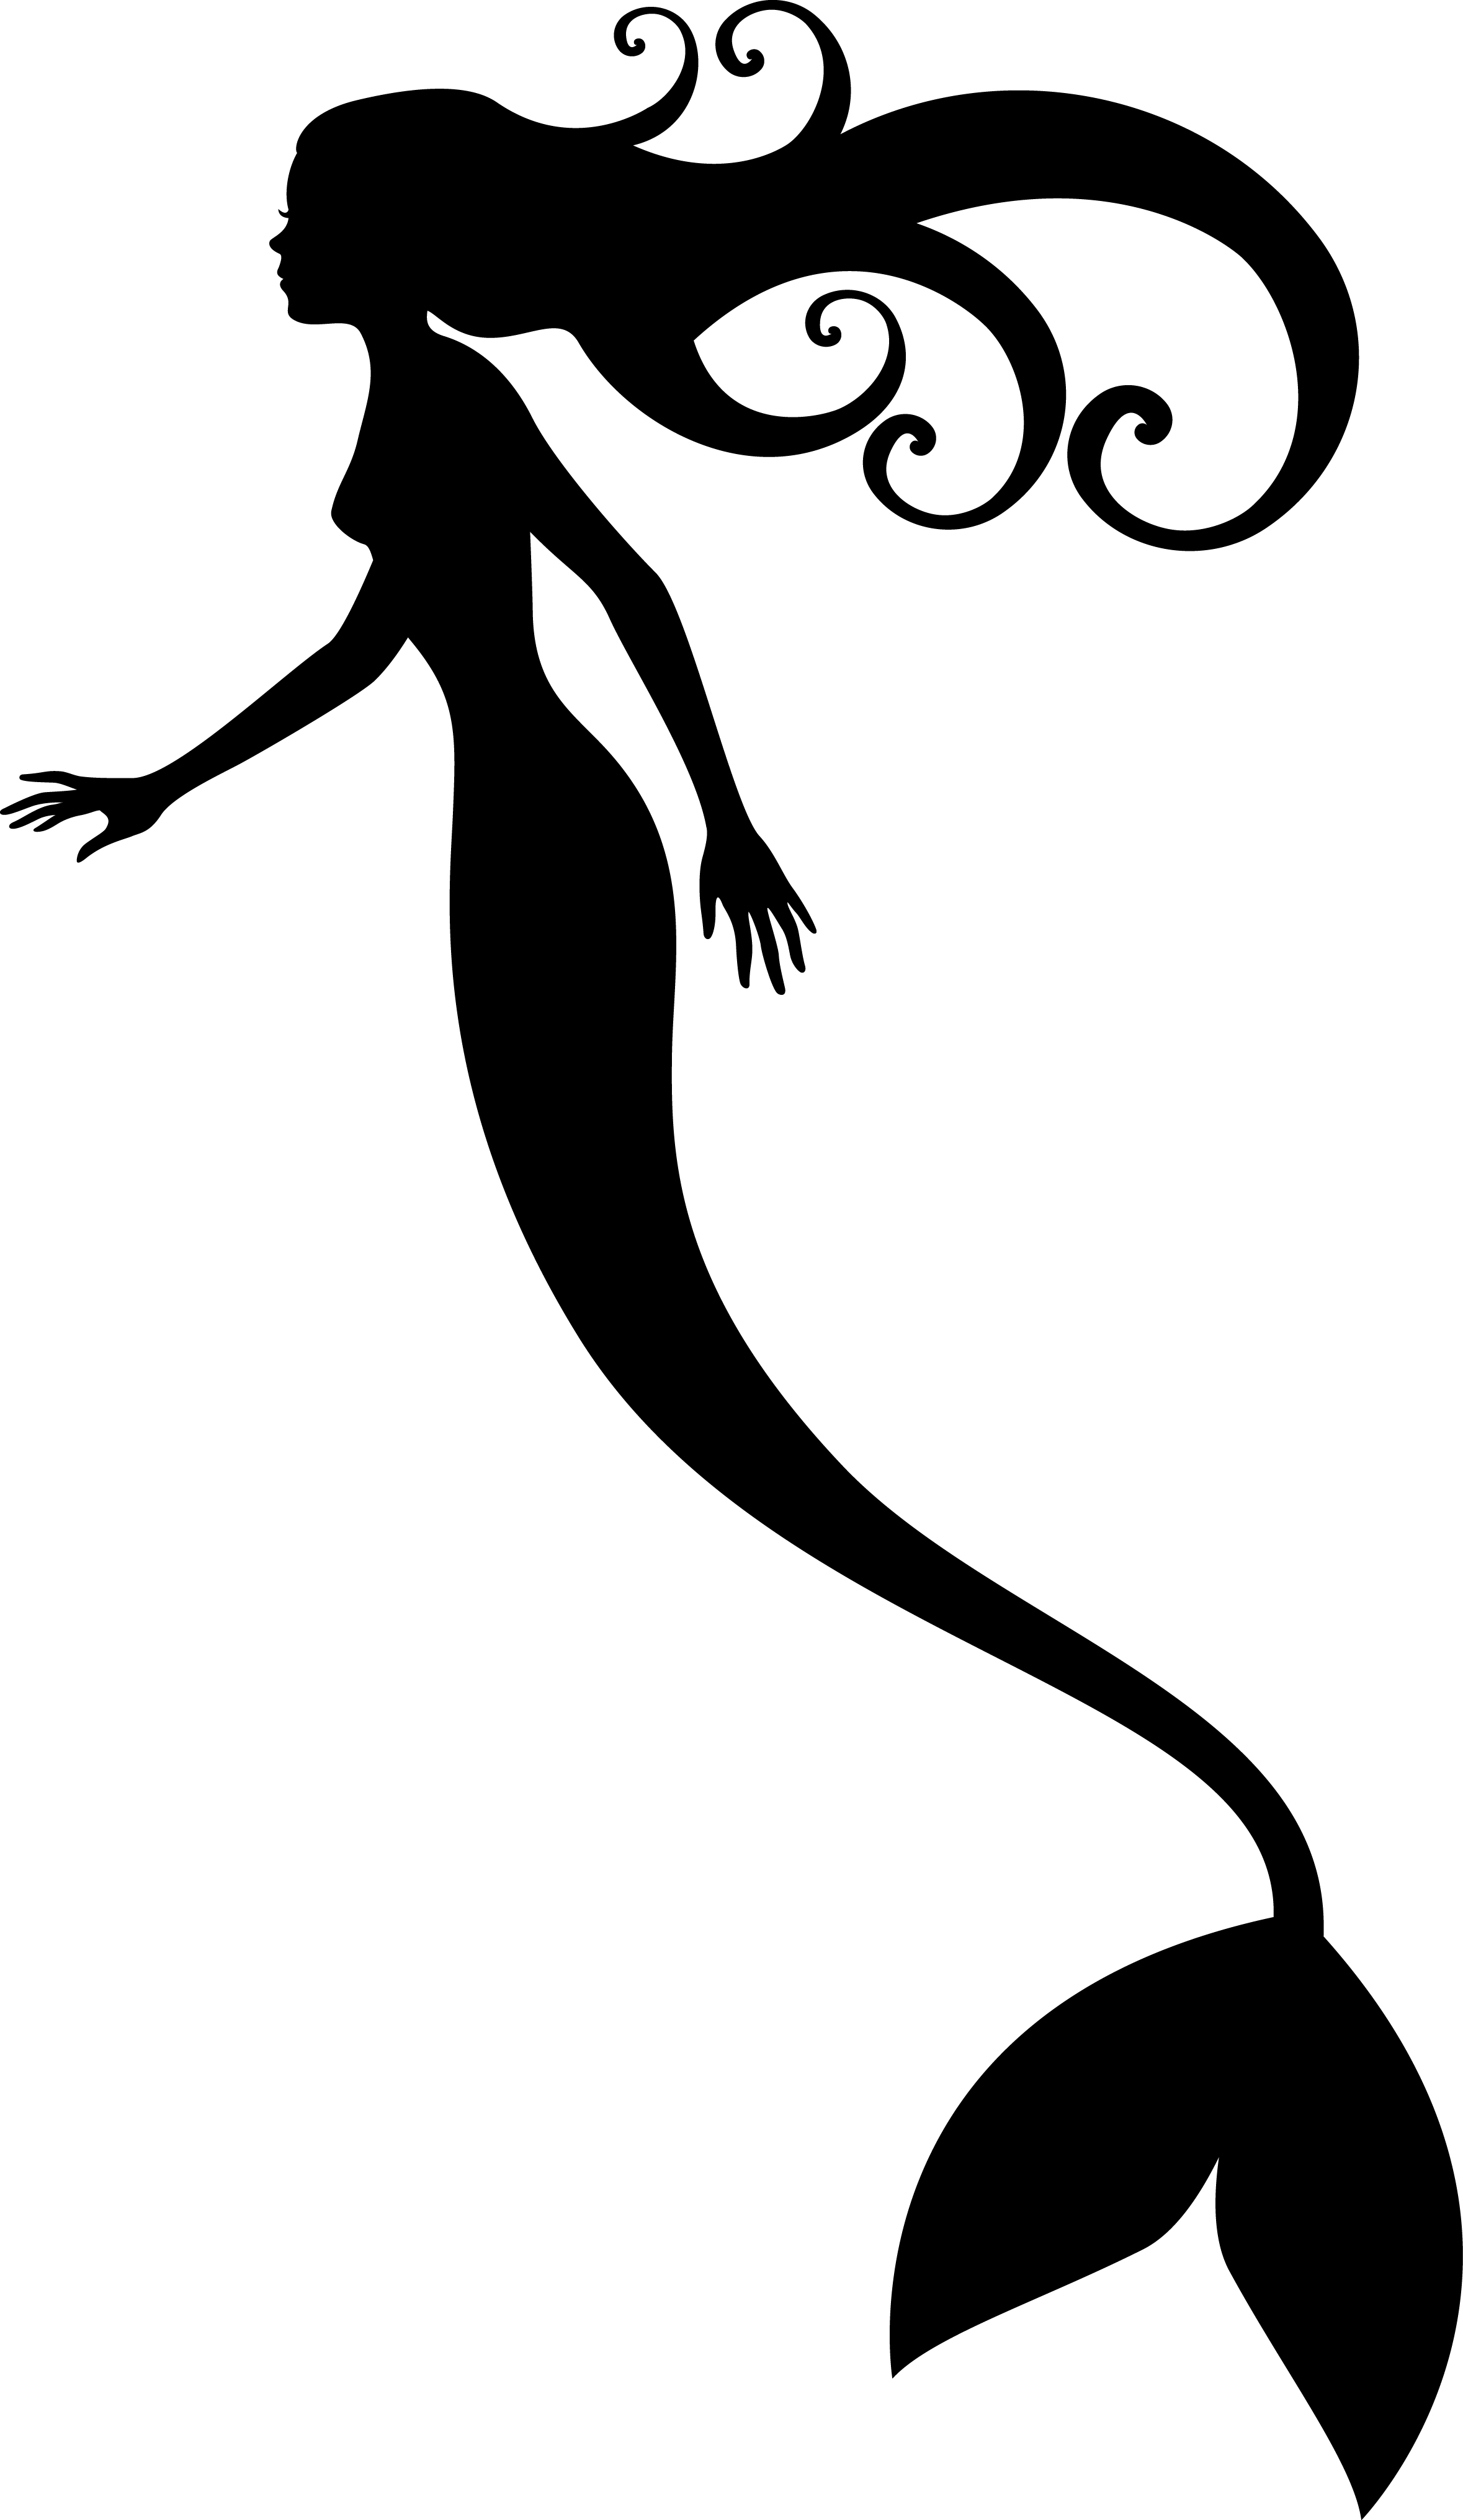 2358x4063 Mermaid Tail Silhouette Clipart Library